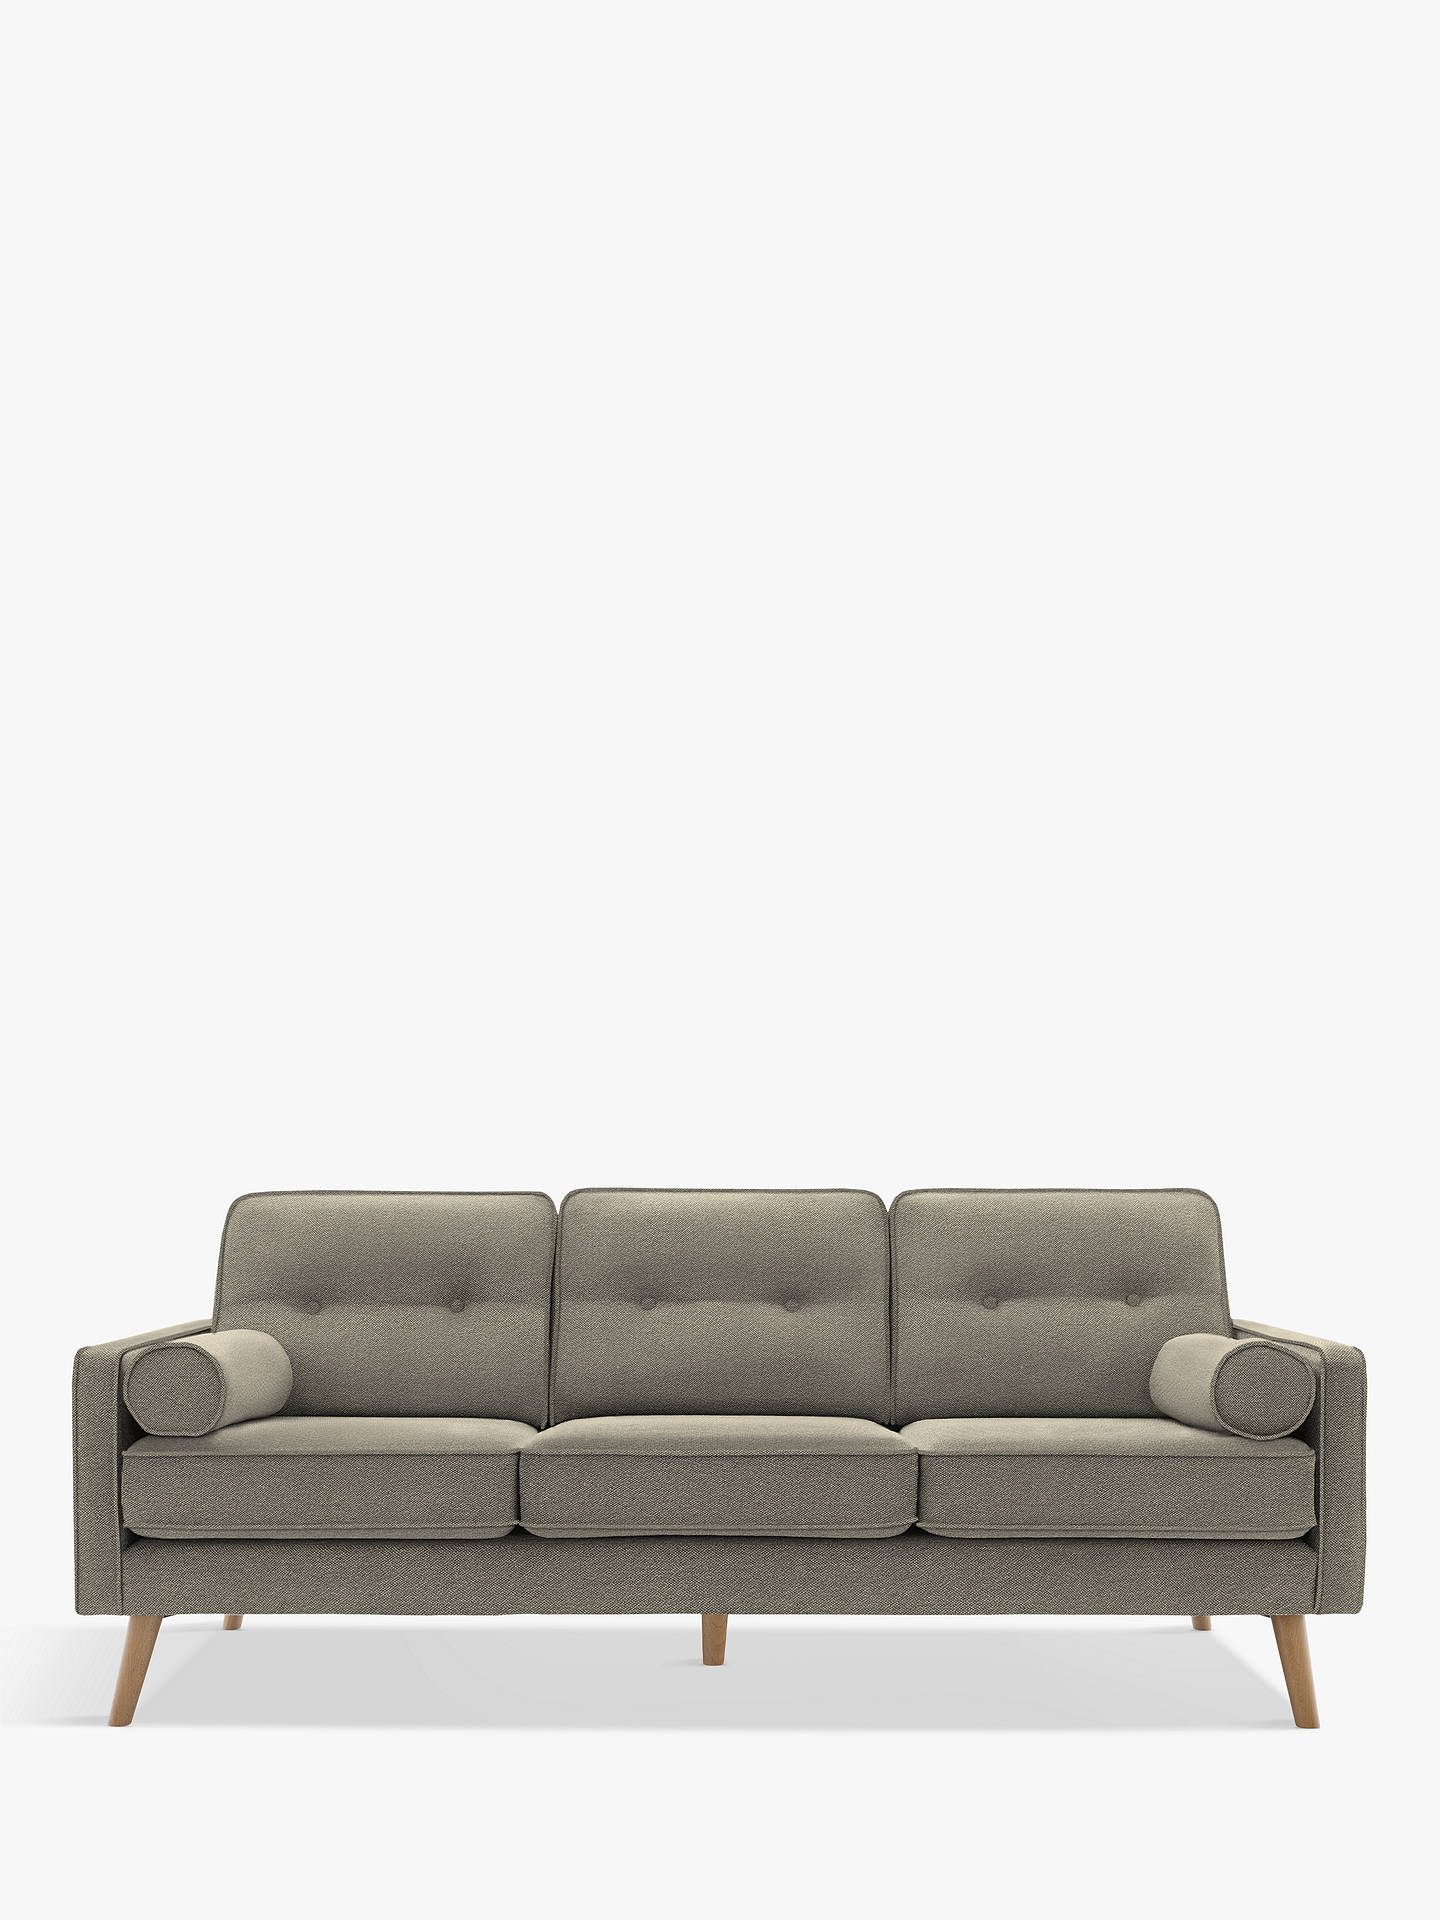 G Plan Vintage The Sixty Five Large 3 Seater Sofa At John Lewis